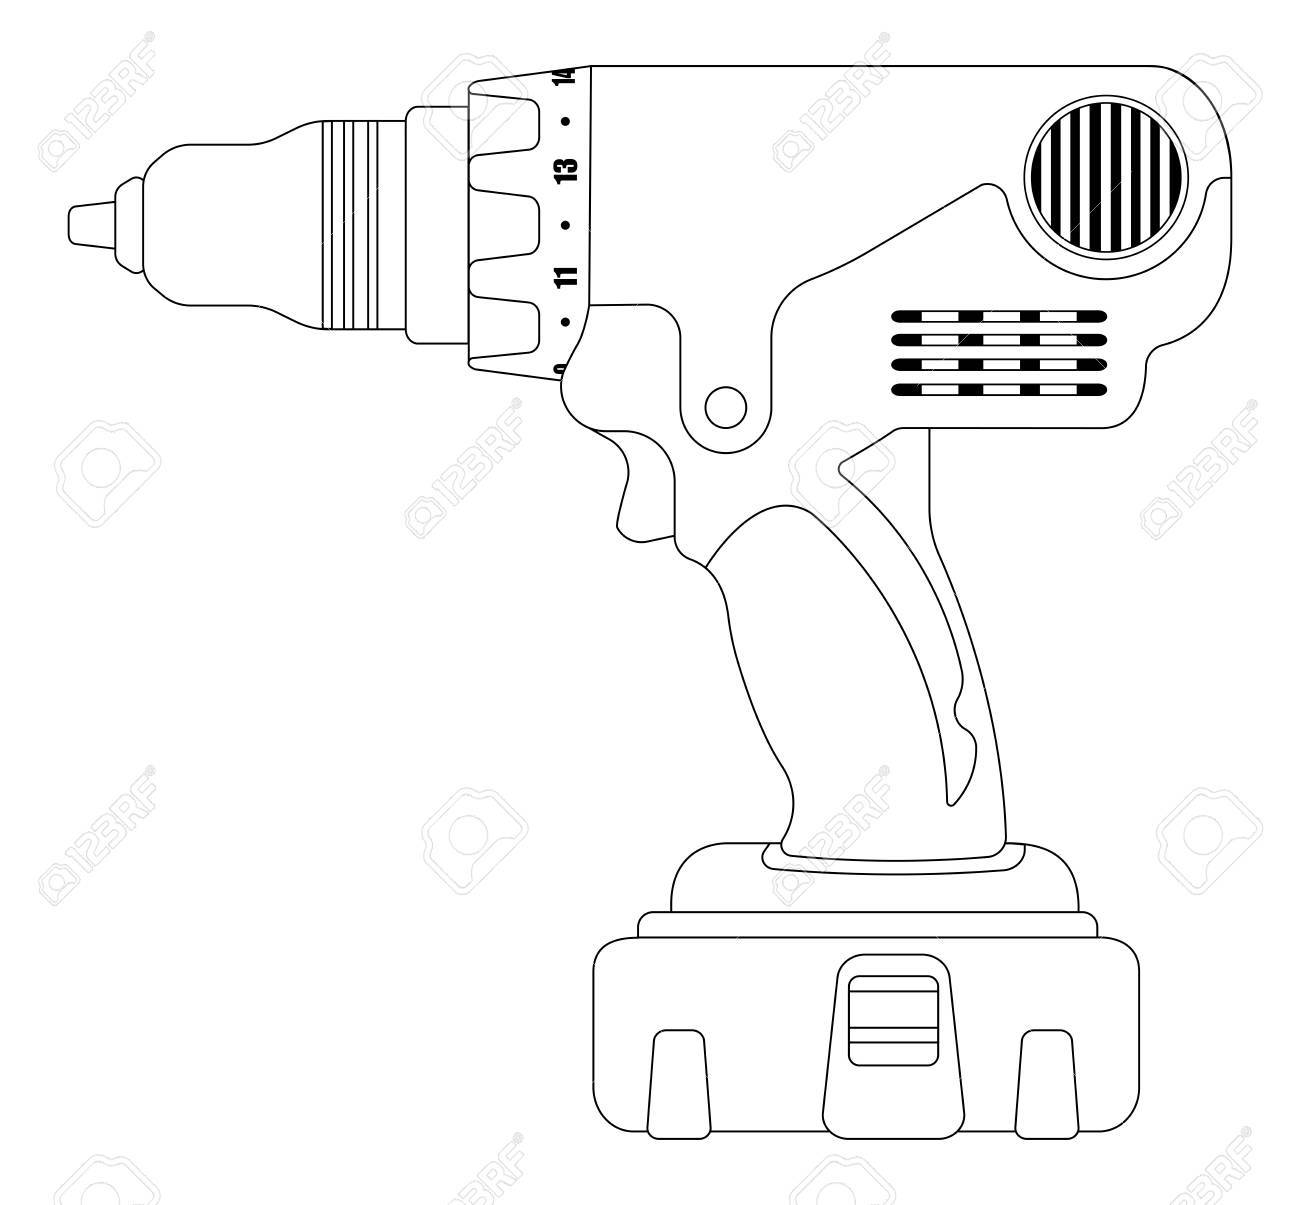 Electric cordless hand drill icon in black and yellow colors